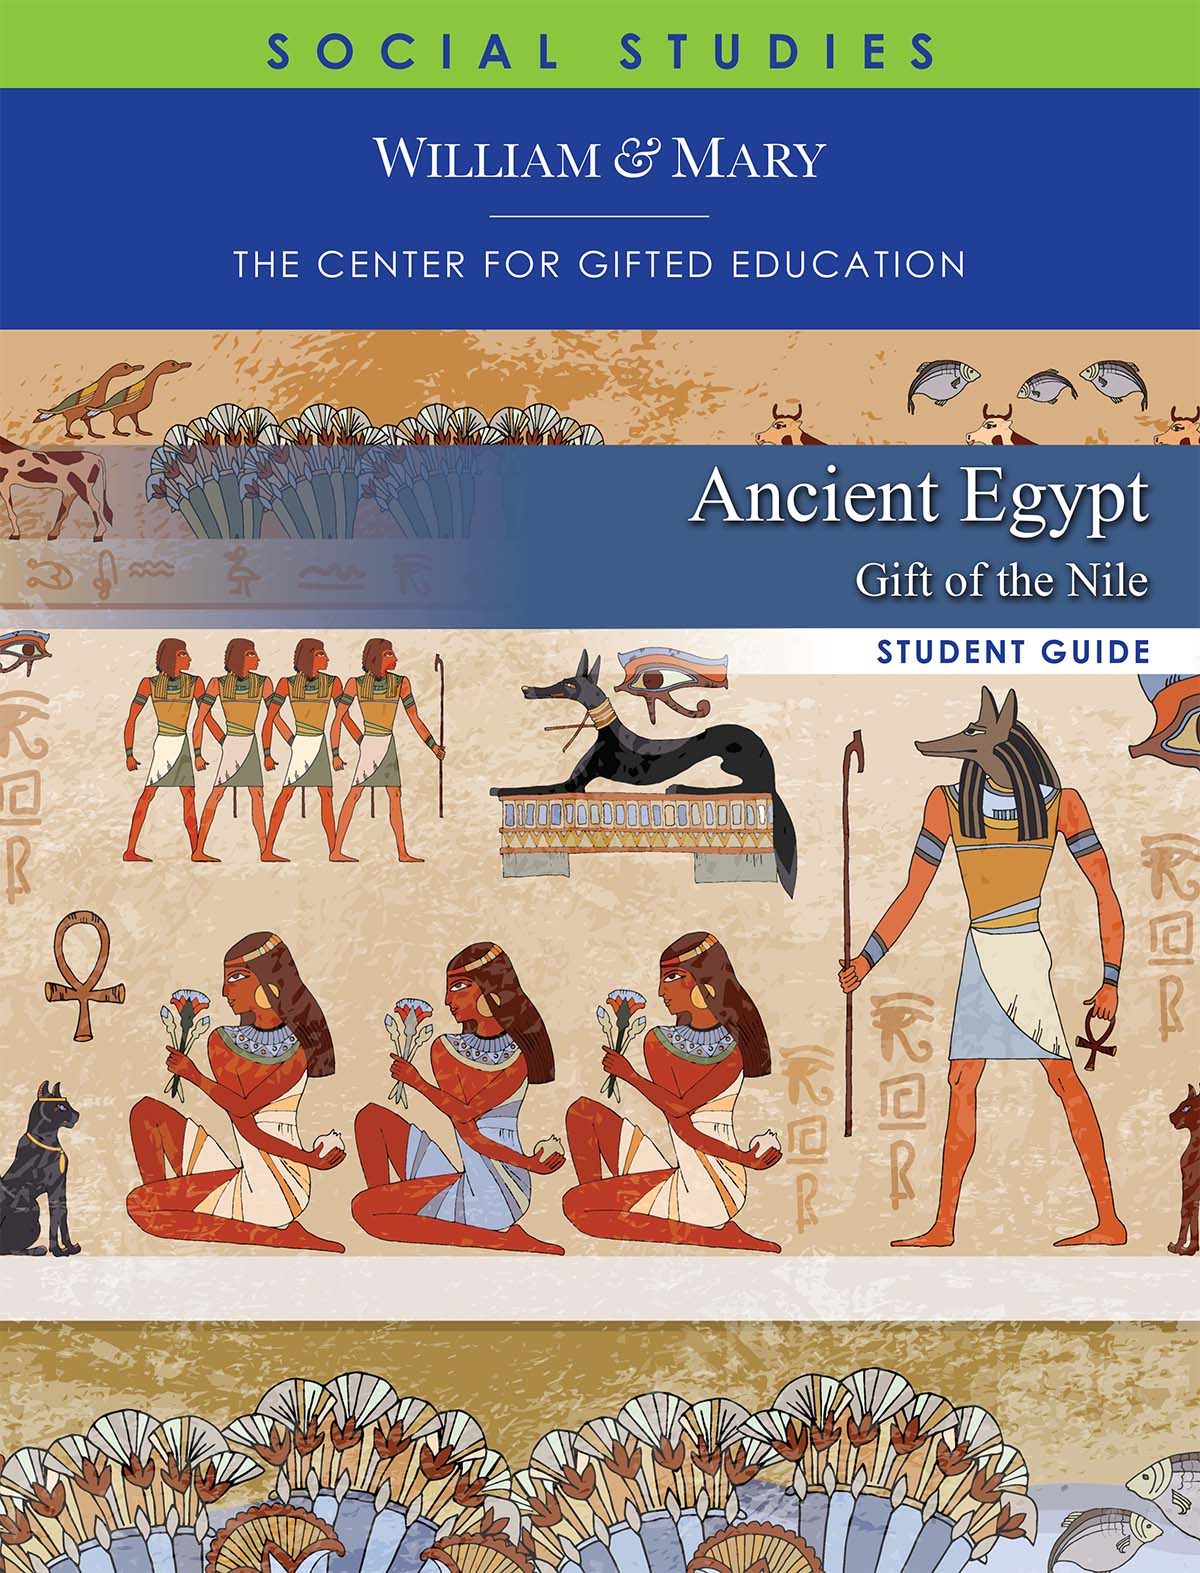 William & Mary Center for Gifted Education Social Studies, Ancient Egypt: Gift of the Nile